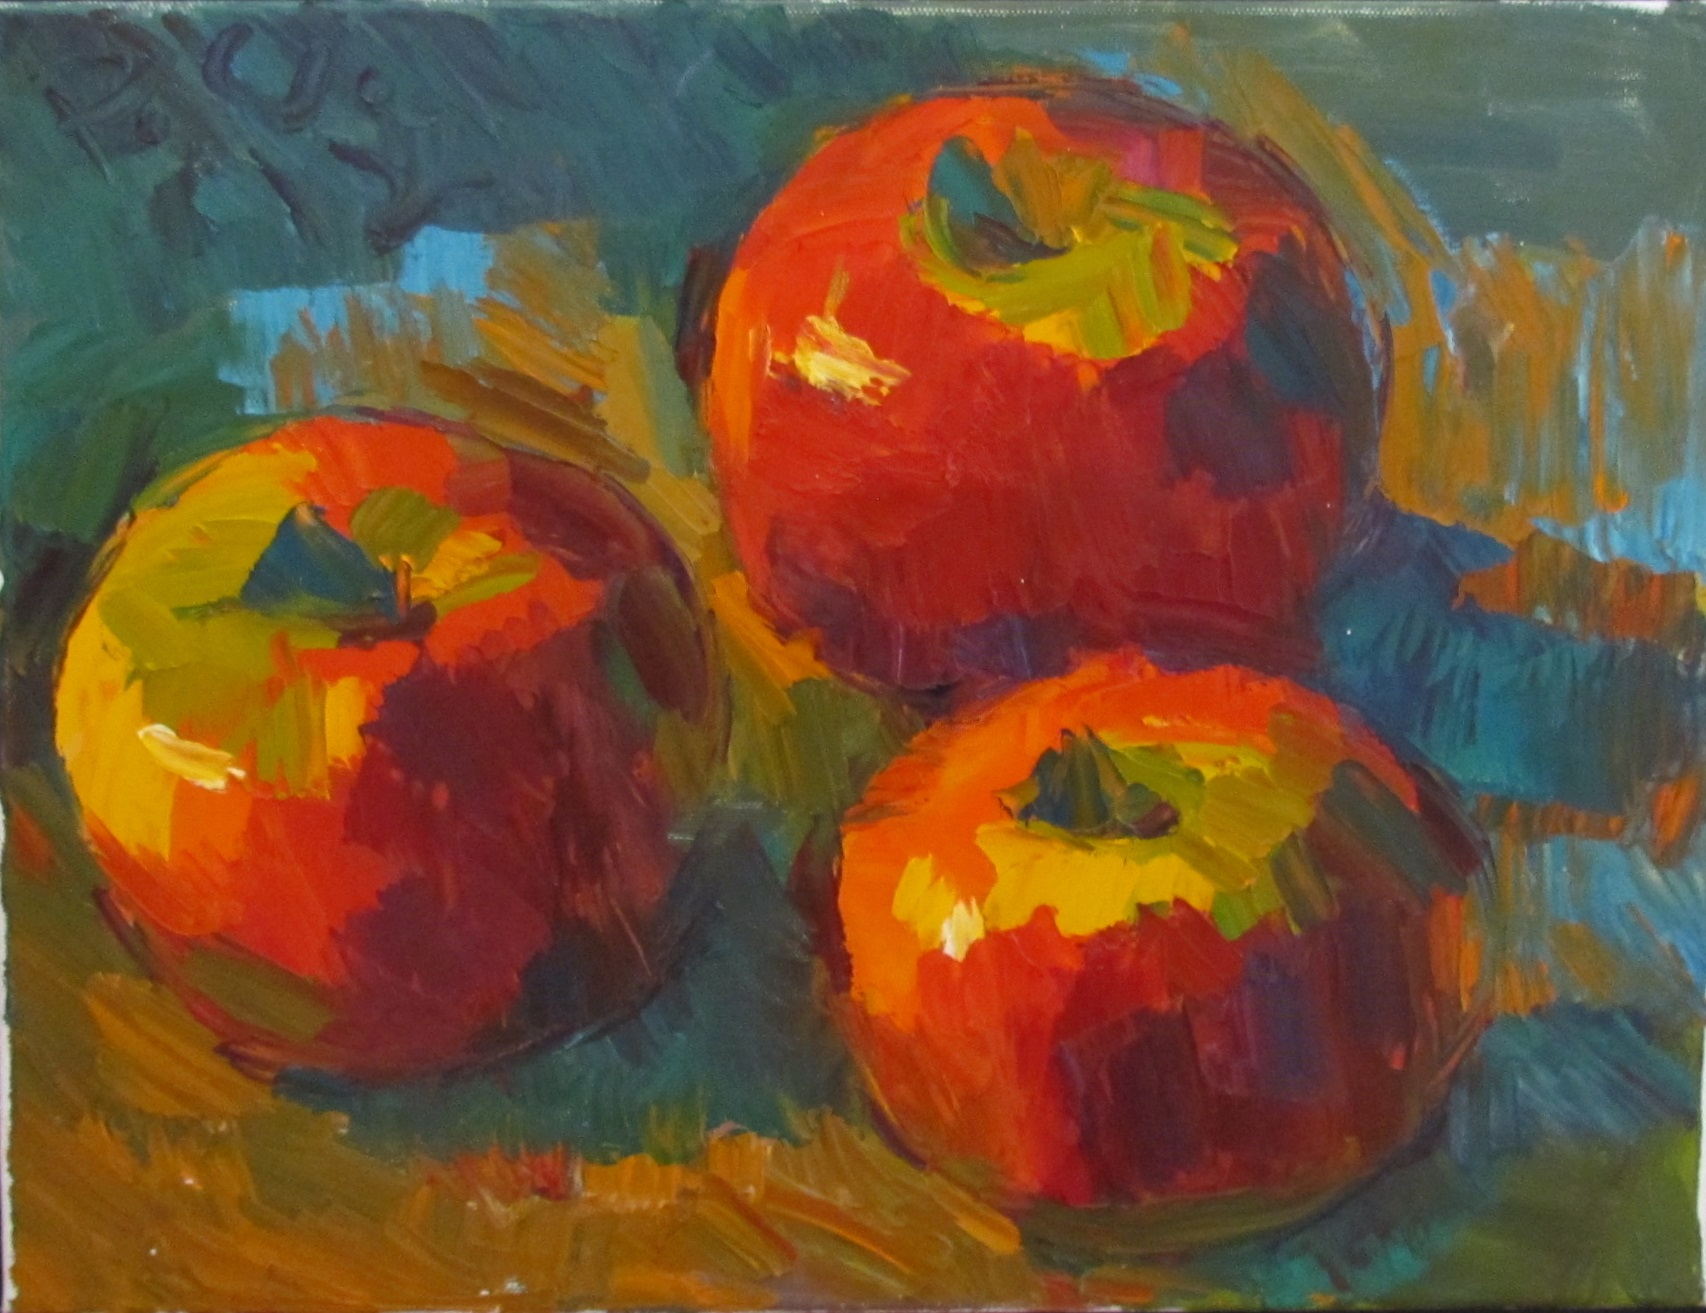 7b. Peter Clapper, 3 Apples, 2014, 9 x 12, oil on canvas